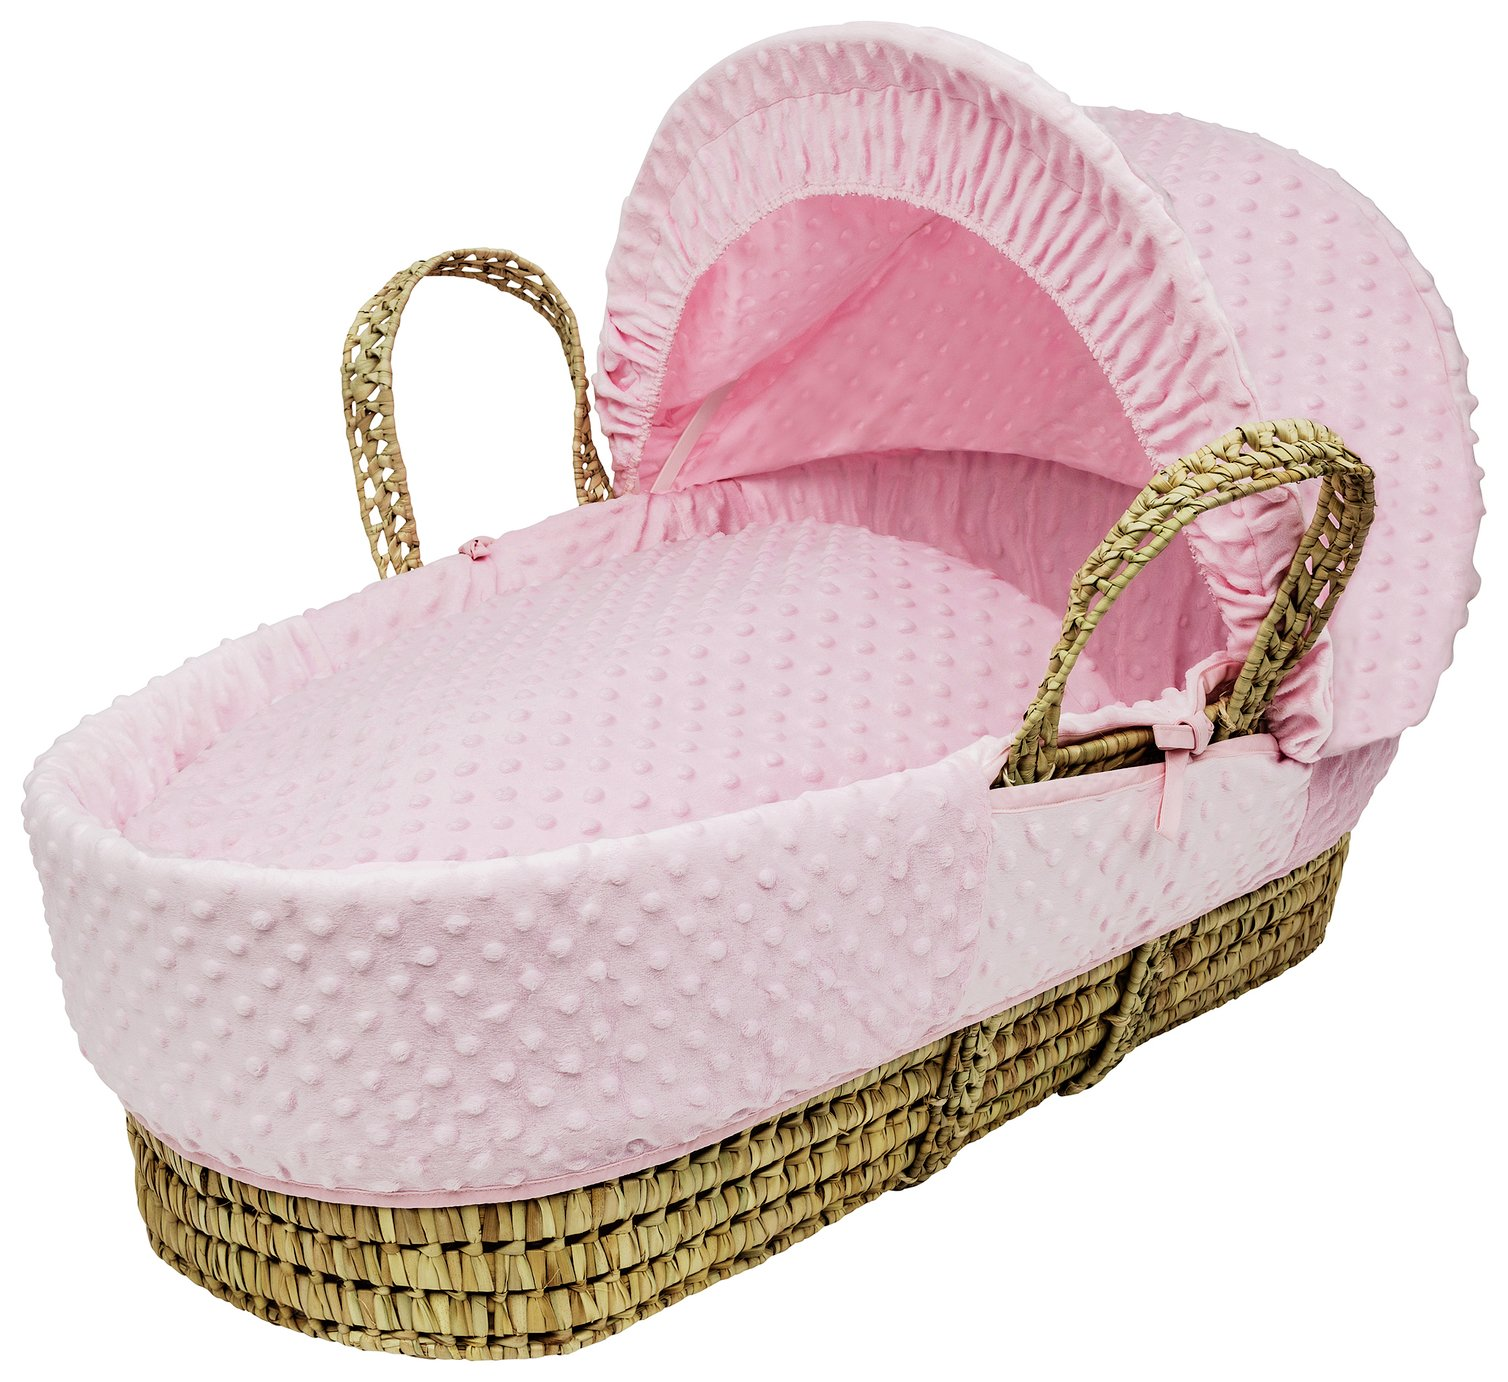 Kinder Valley Pink Dimple Moses Basket review